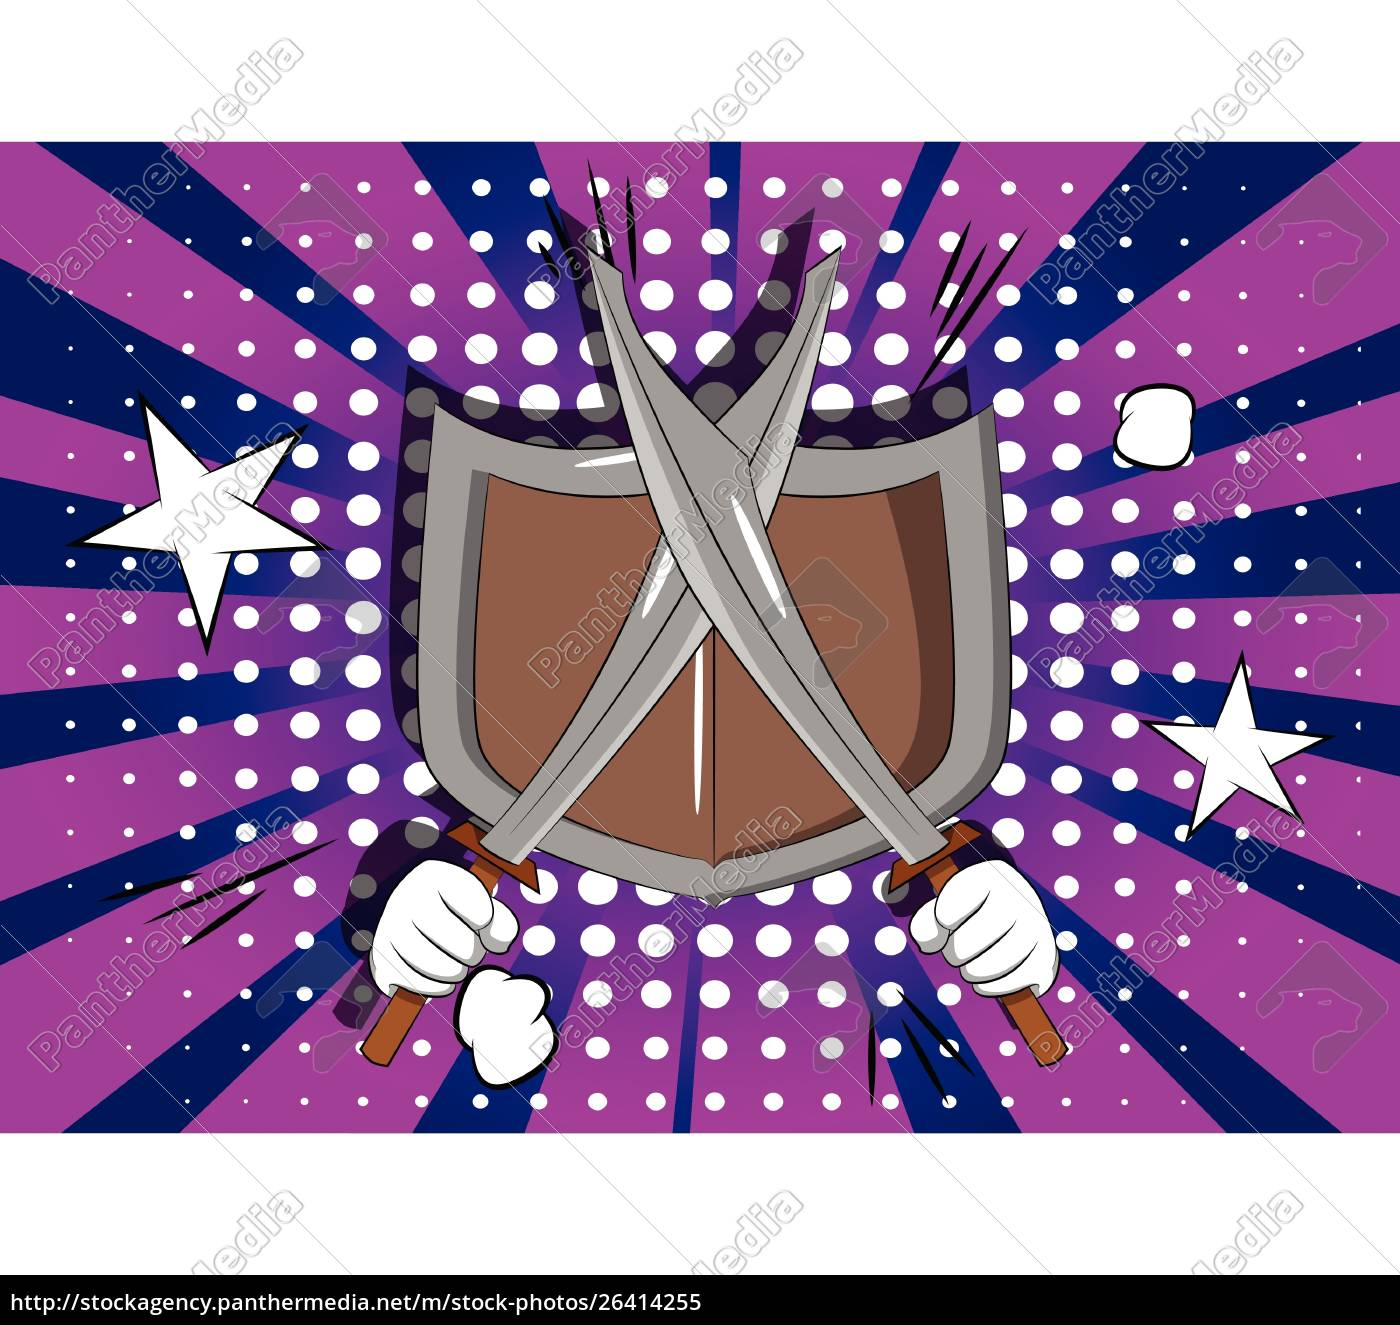 cartoon, hands, holding, two, swords, with - 26414255